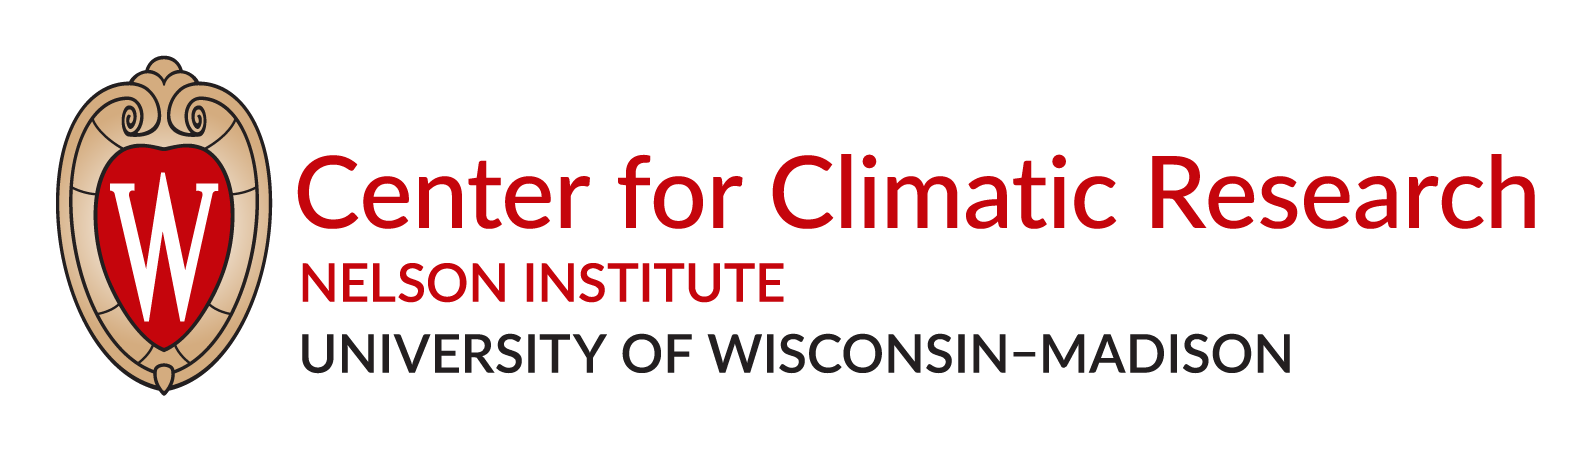 Nelson Institute Center for Climatic Research